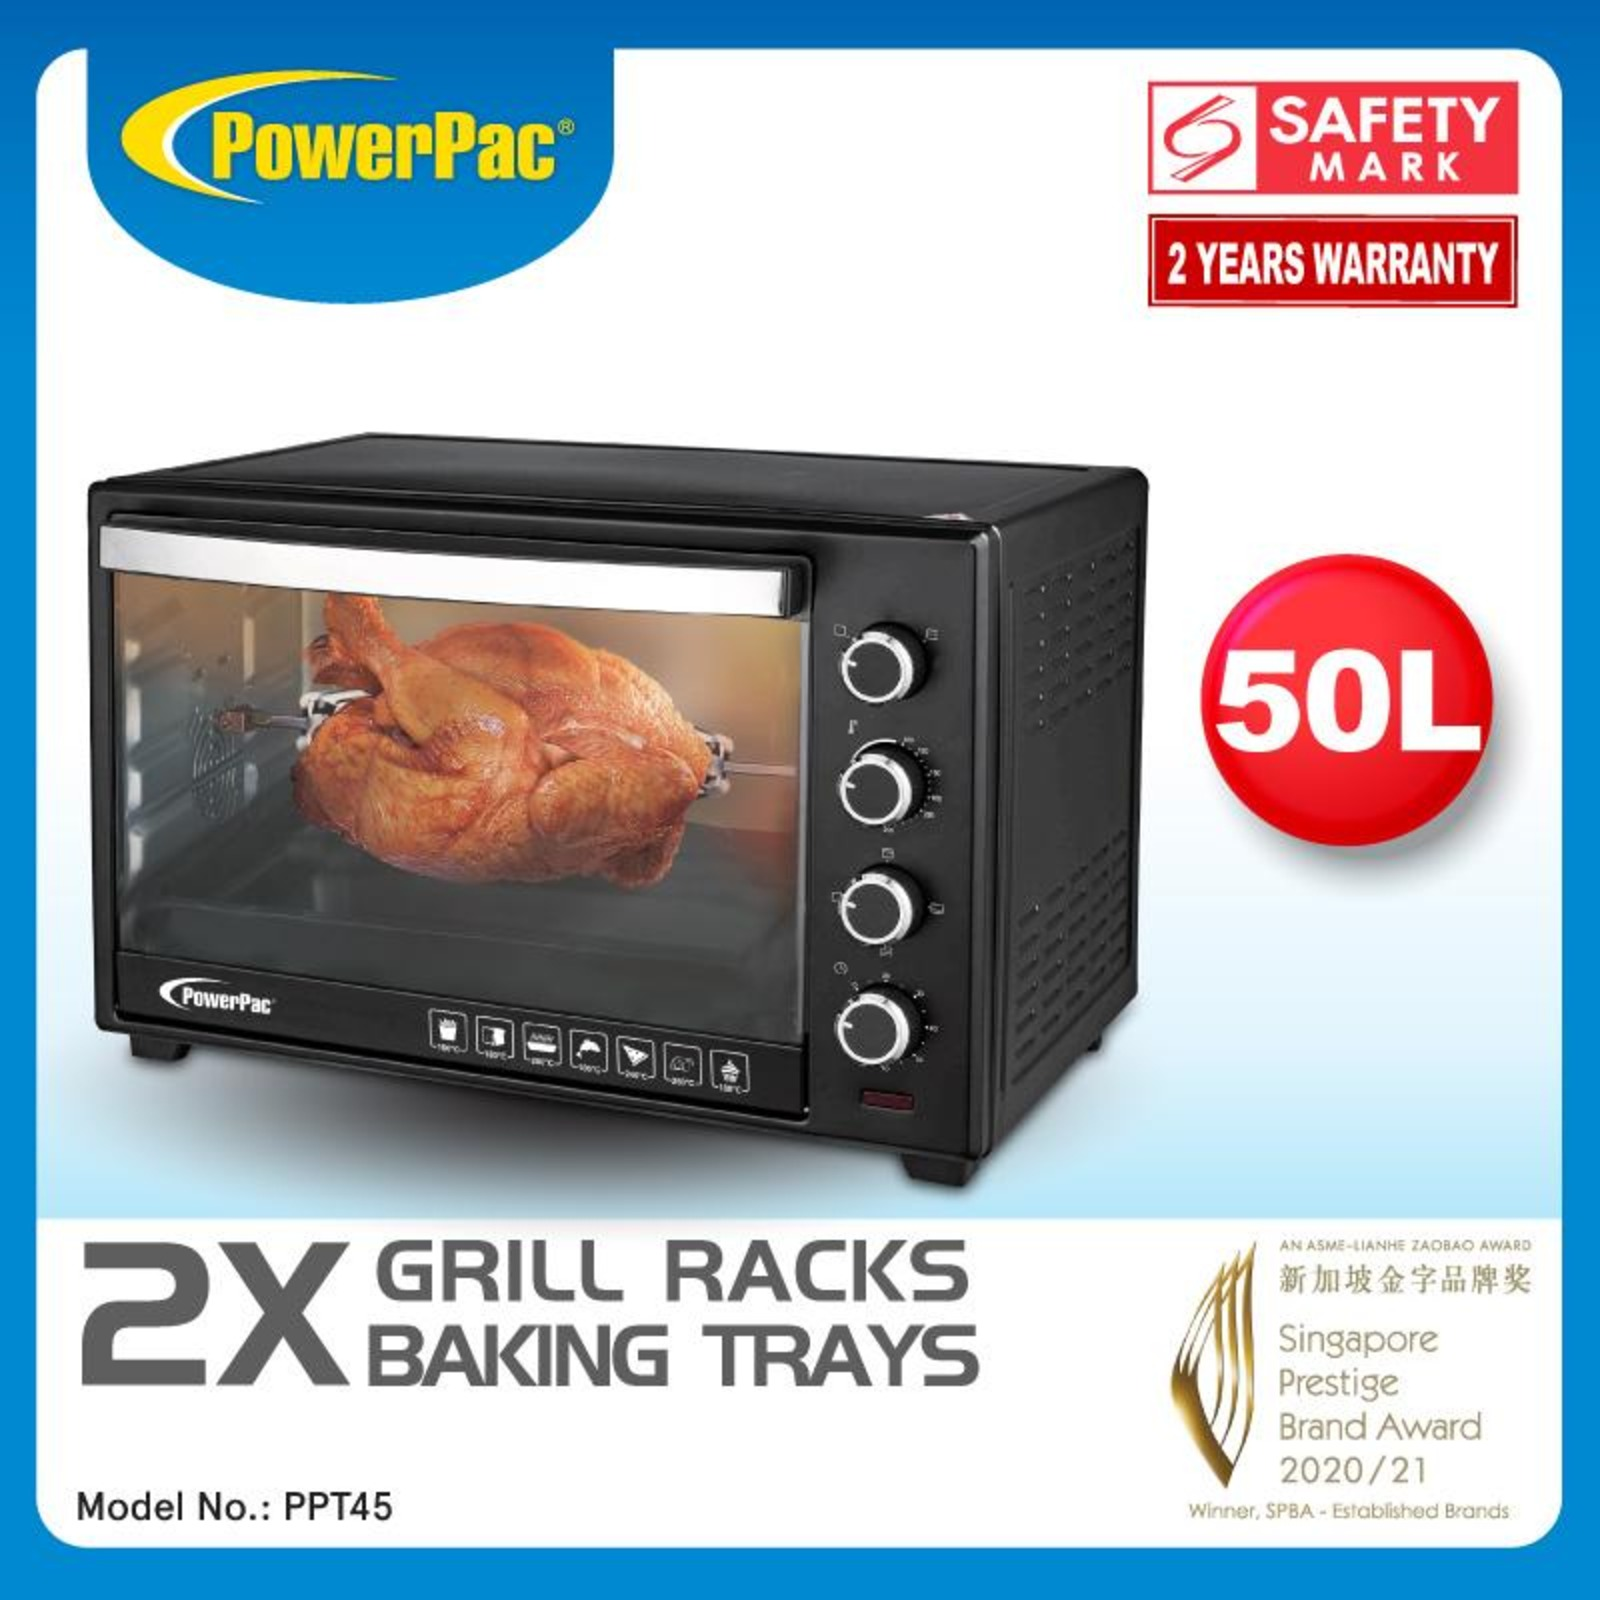 PowerPac (PPT45) 45L Electric Oven